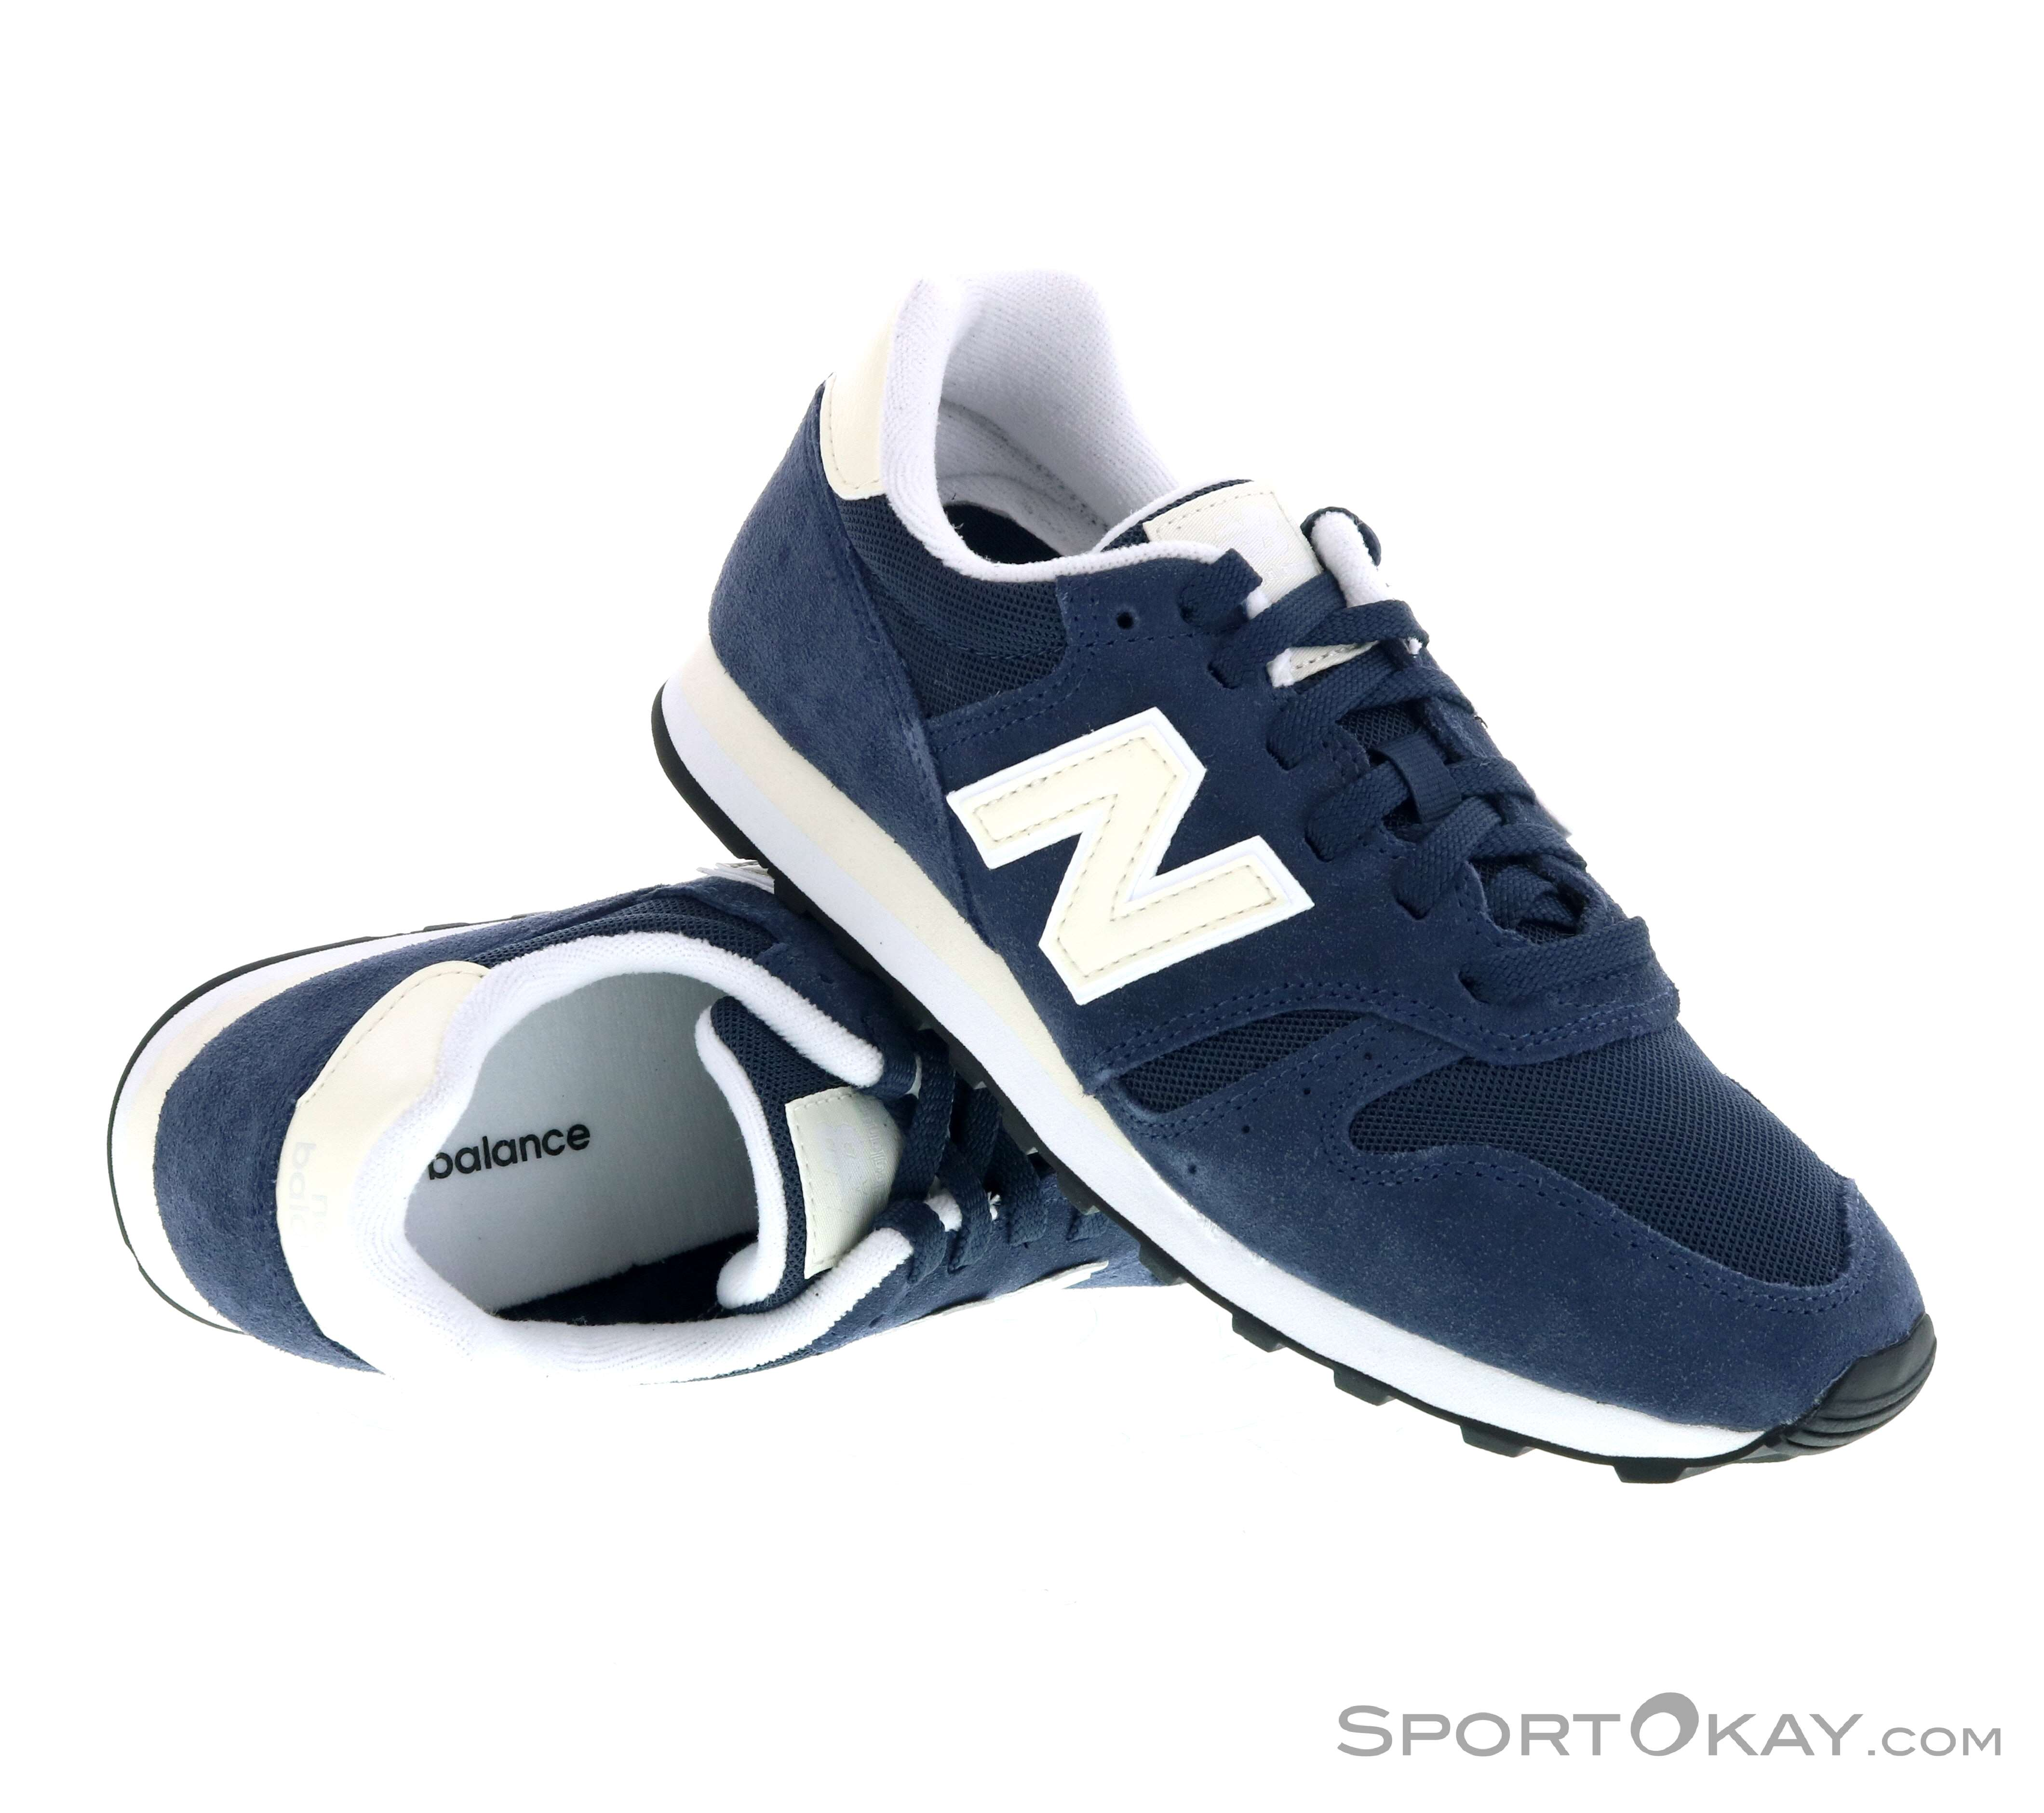 New Balance New Balance 373 Womens Leisure Shoes